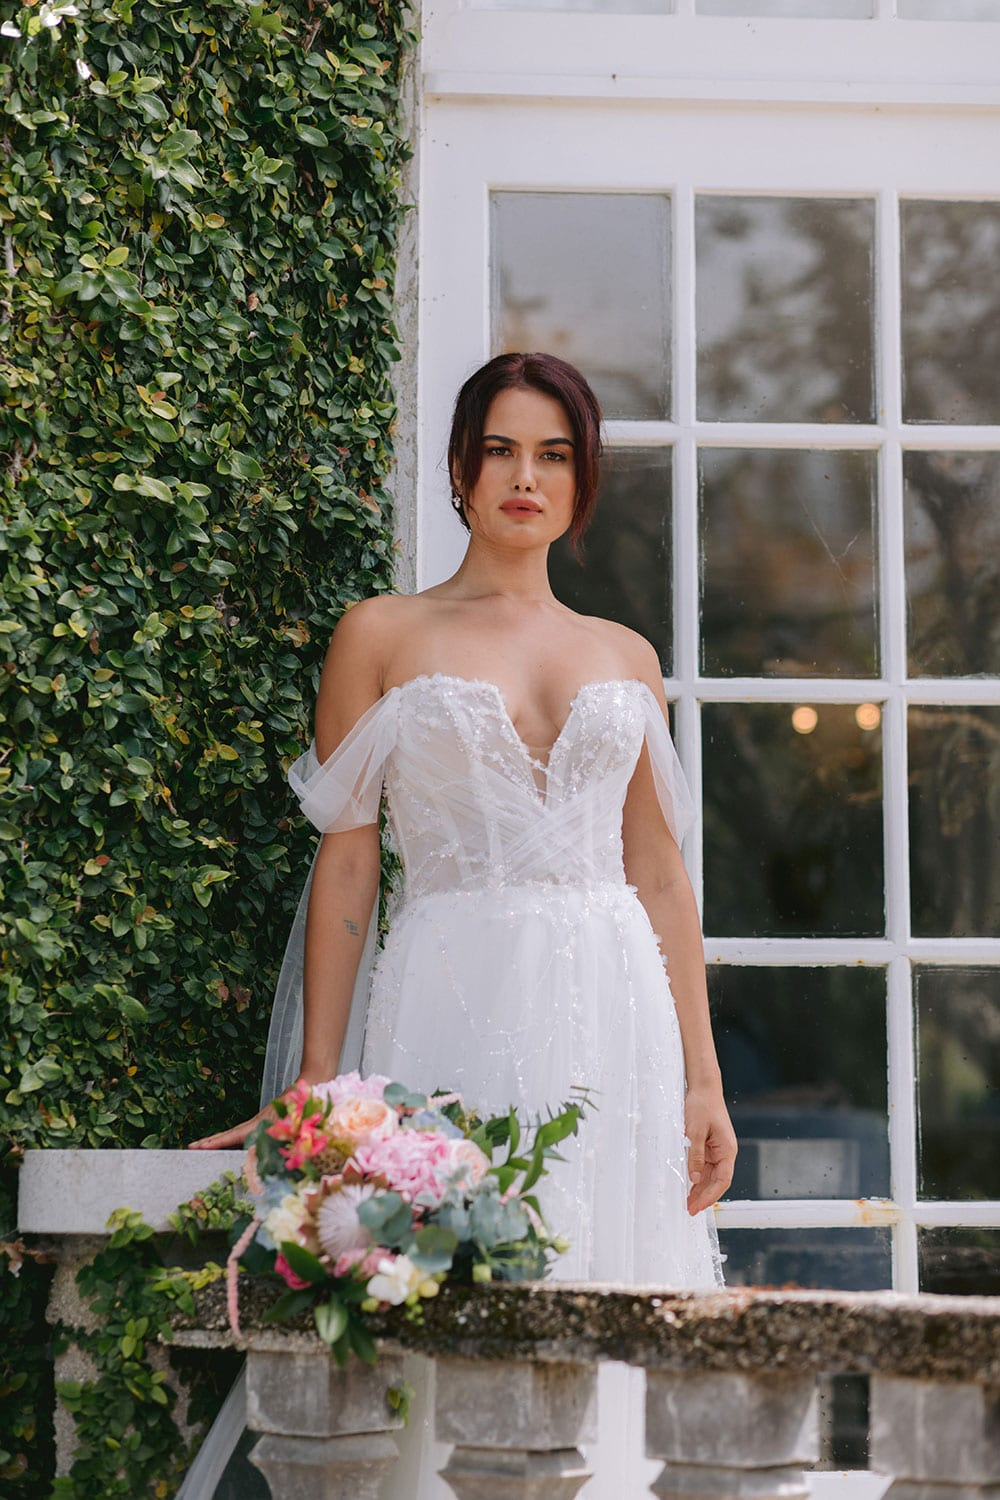 Evie Wedding gown from Vinka Design - Dreamy semi-sheer wedding dress with lace embroidery and beading. The bodice is structured, with hand-appliqued lace and draped with tulle to integrate modern elements with classic design. Model wearing gown on balcony with bouquet.